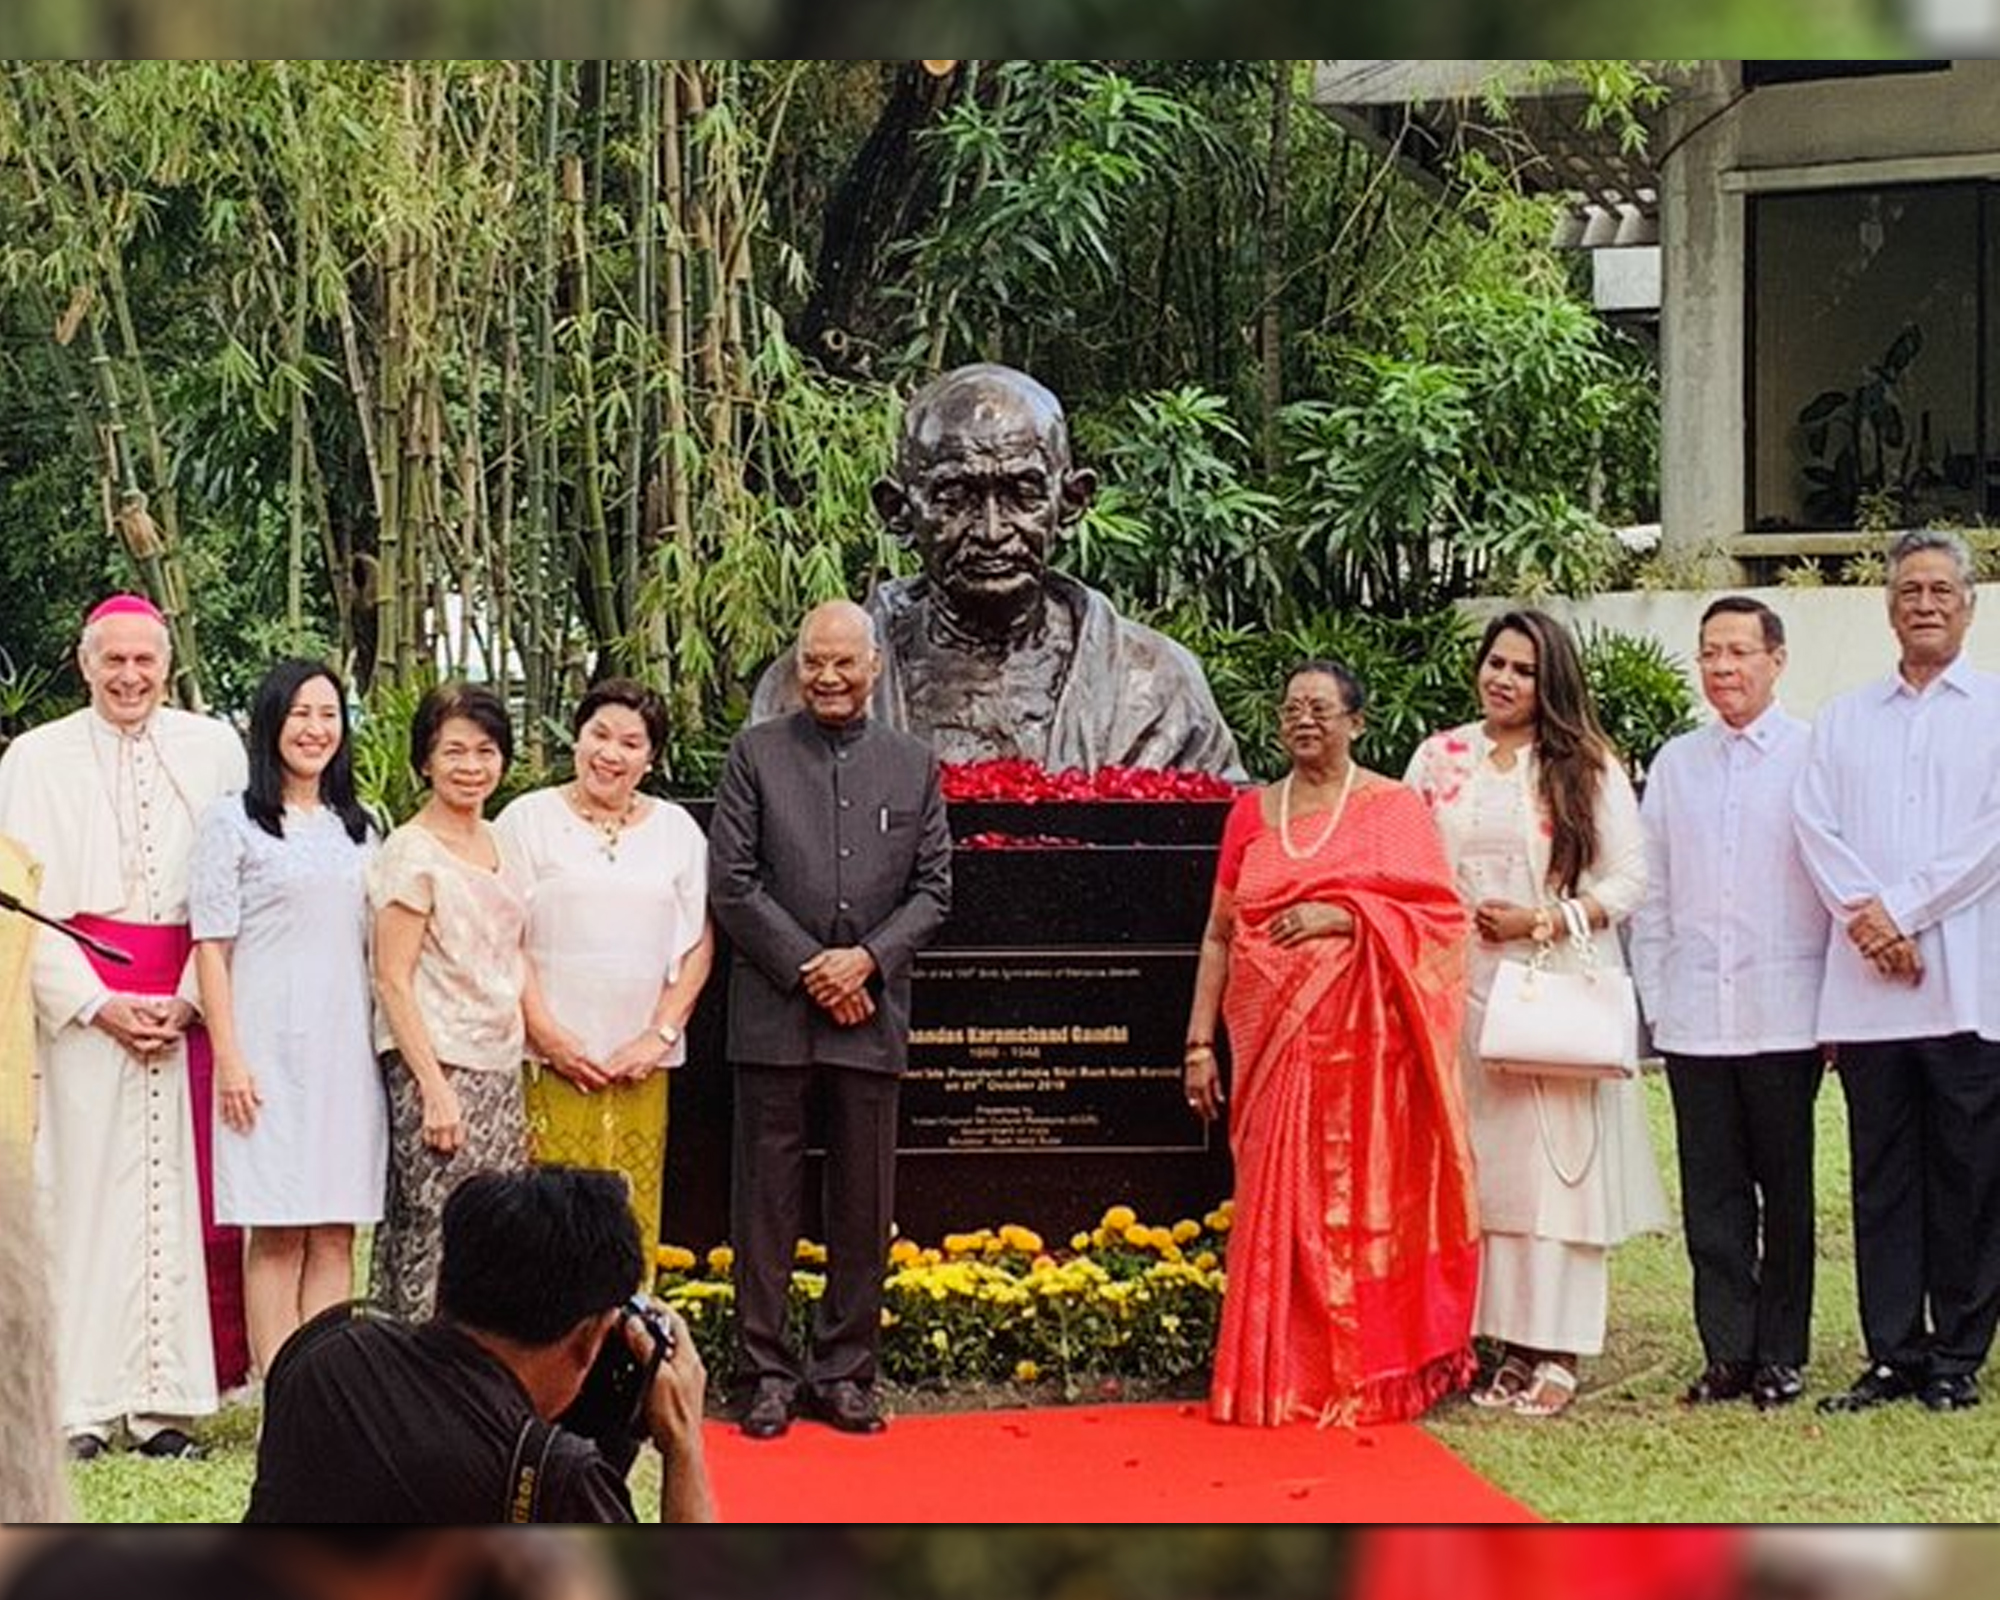 Indian President Kovind unveils first Gandhi bust in PH by Bianca Dava  |  ABSCBN